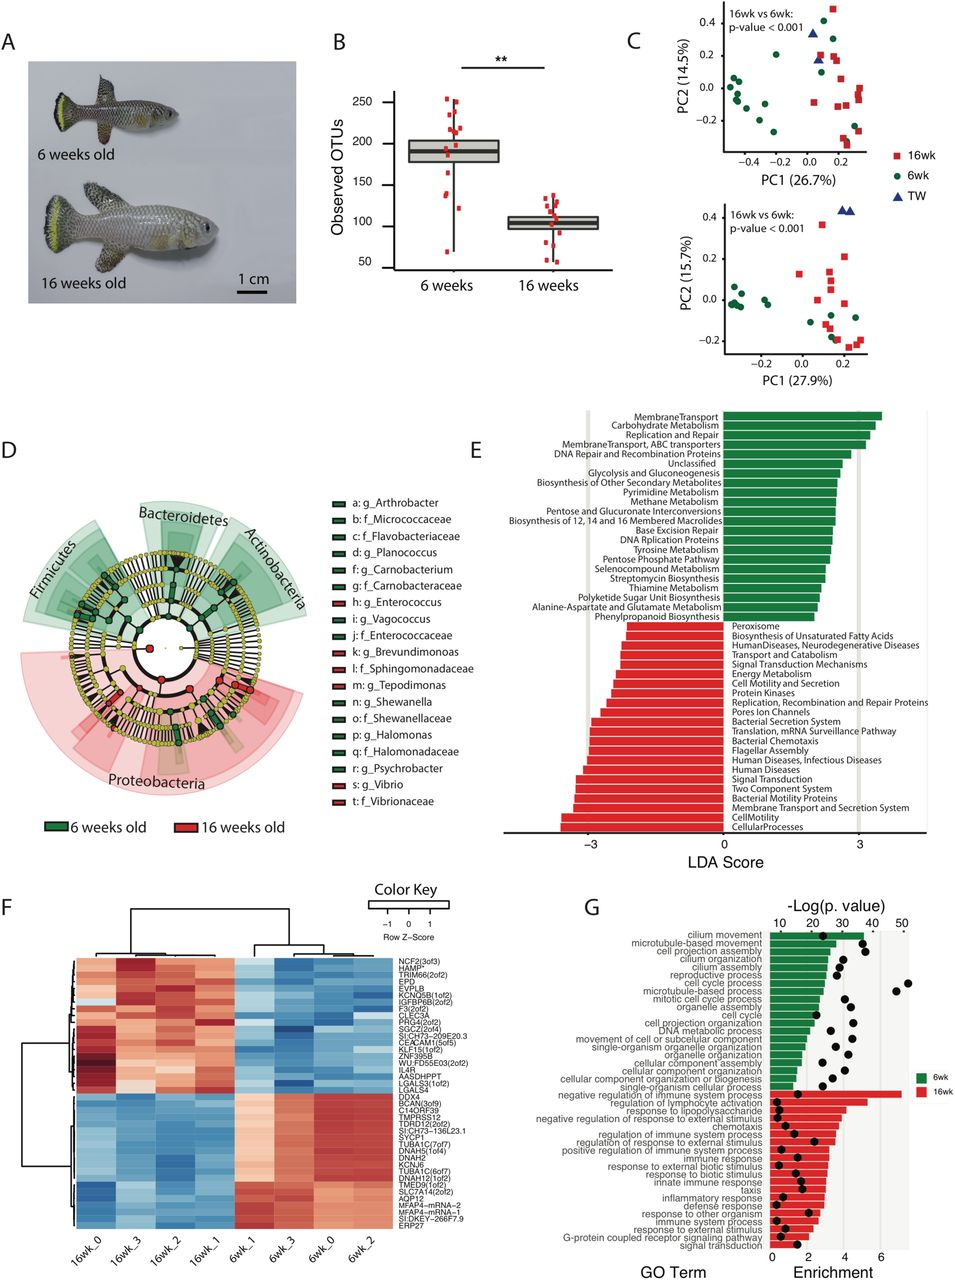 Regulation of Life Span by the Gut Microbiota in The Short-Lived